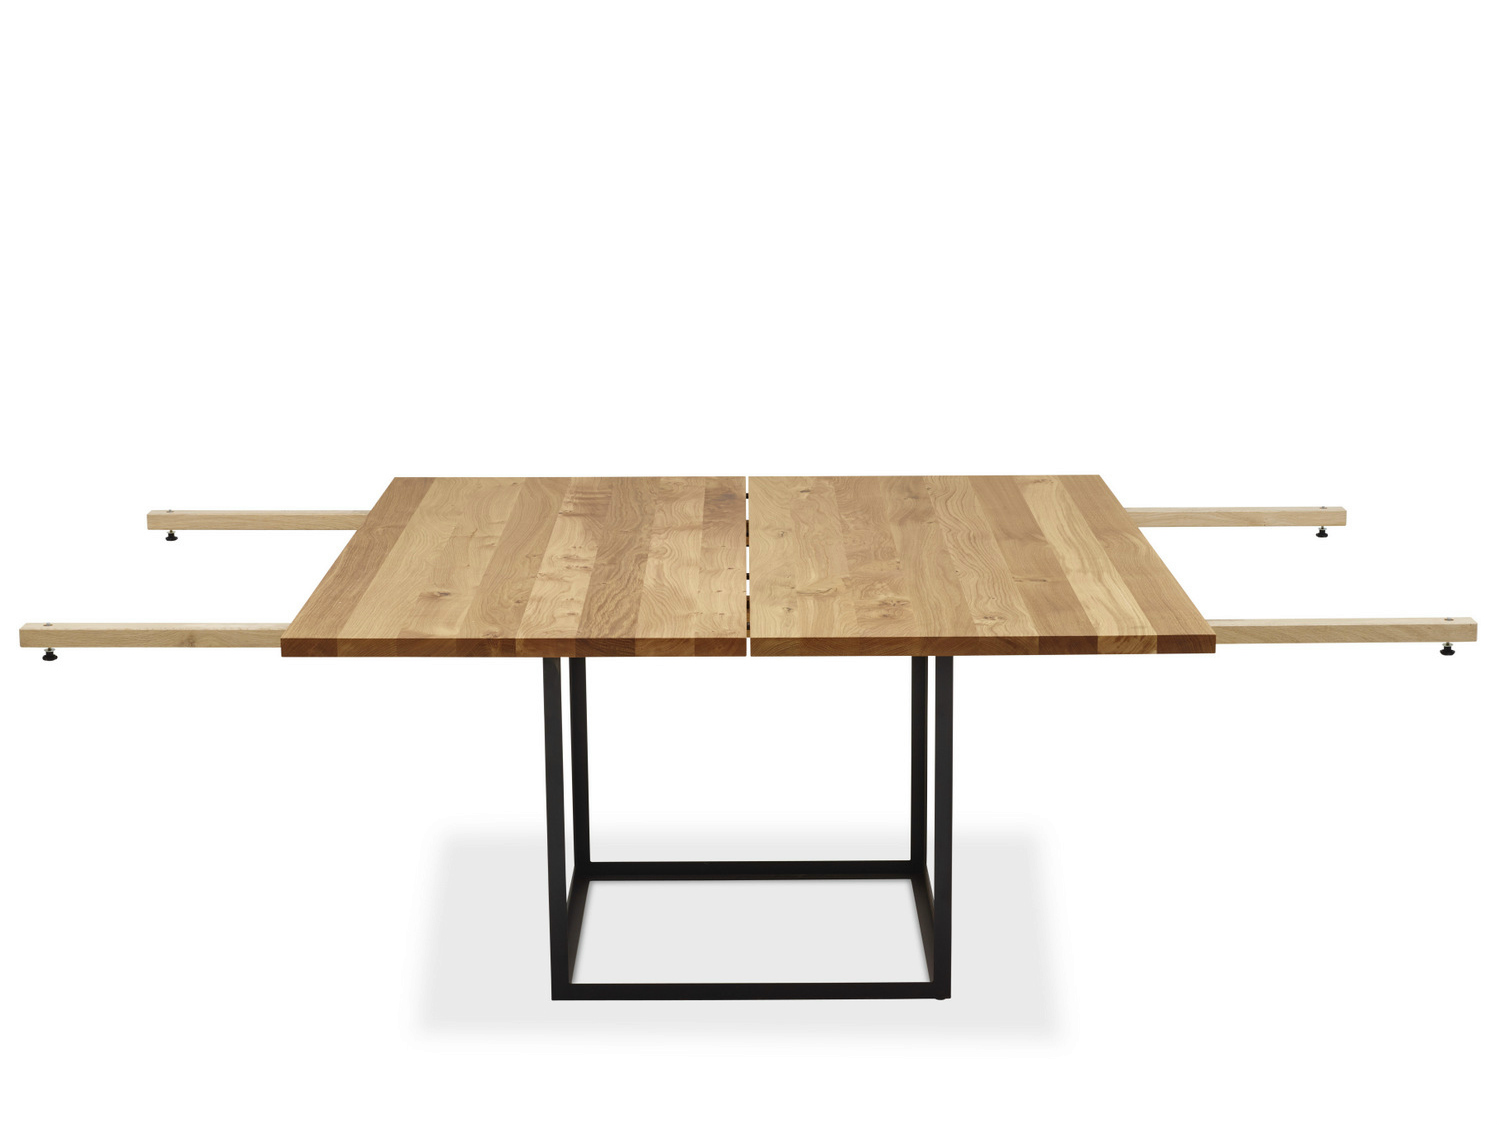 JEWEL TABLE DK3: tavolo allungabile legno